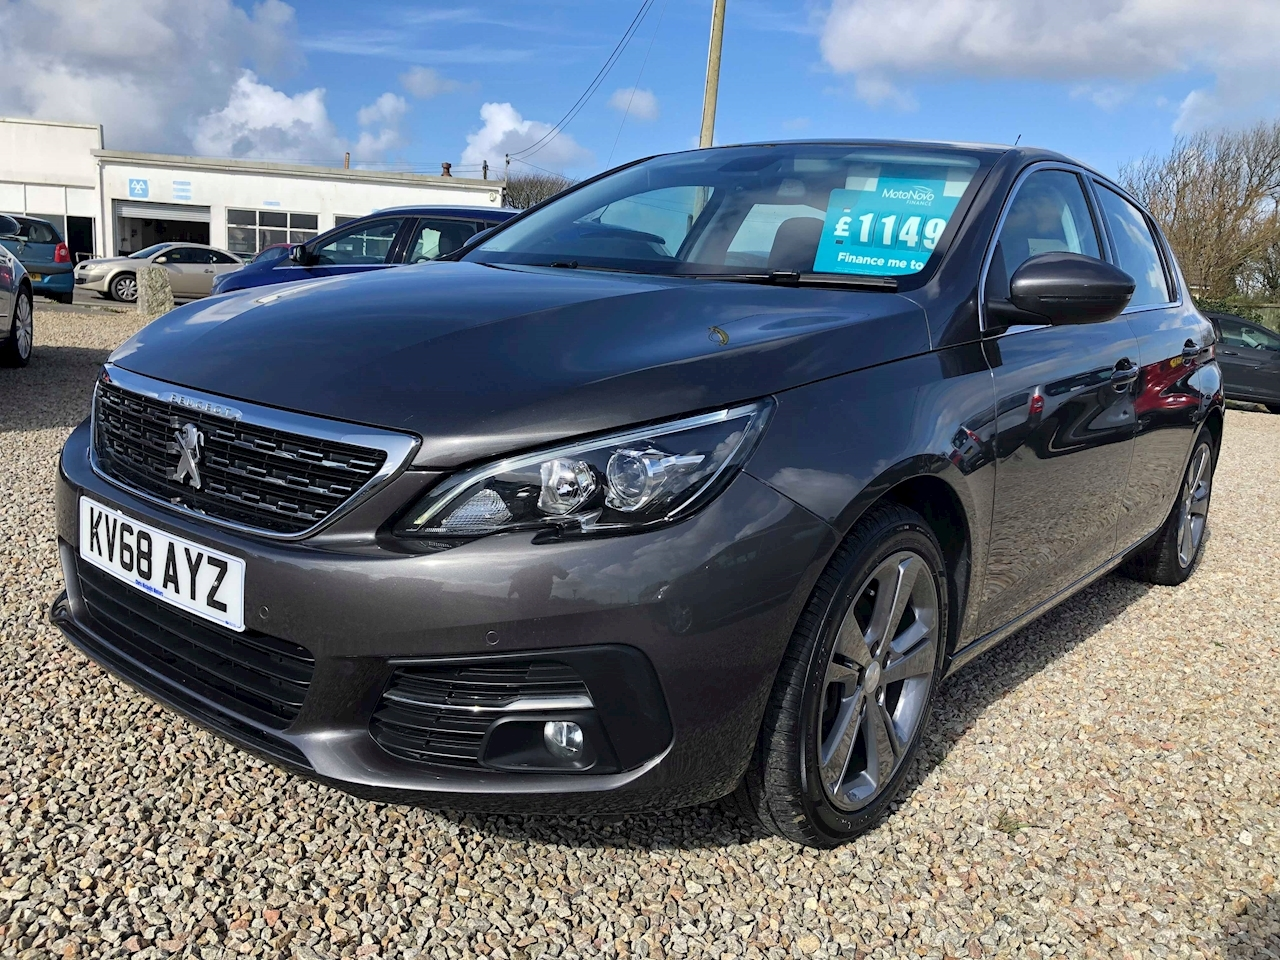 Peugeot 308 Blue Hdi S/S Allure Hatchback 1.5 Manual Diesel